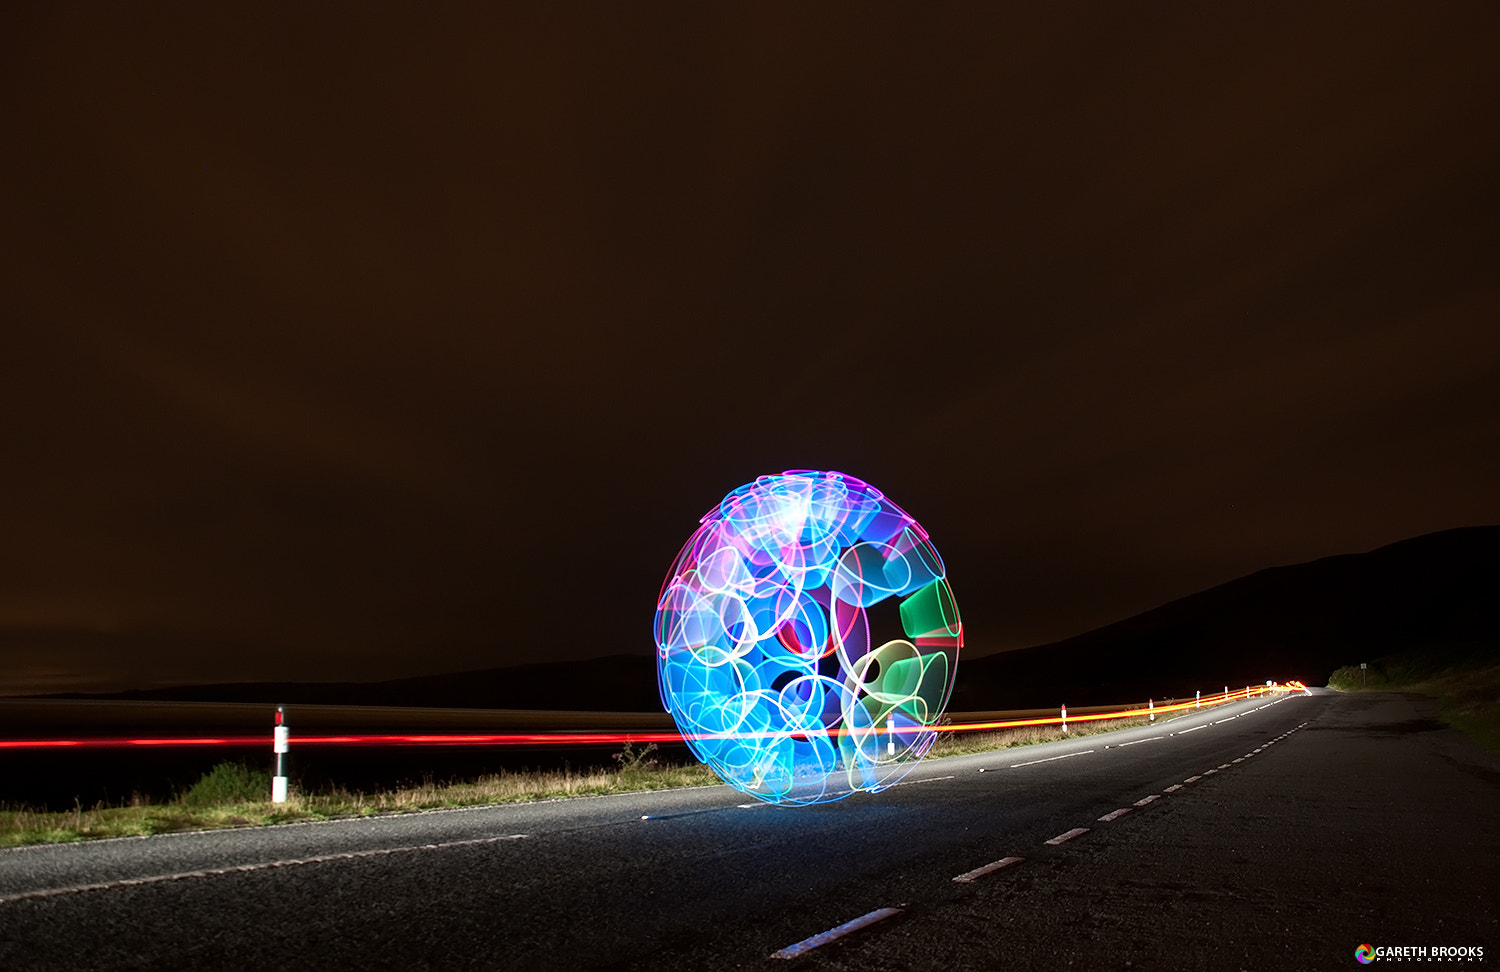 Photograph Trailing Orb by Gareth Brooks on 500px